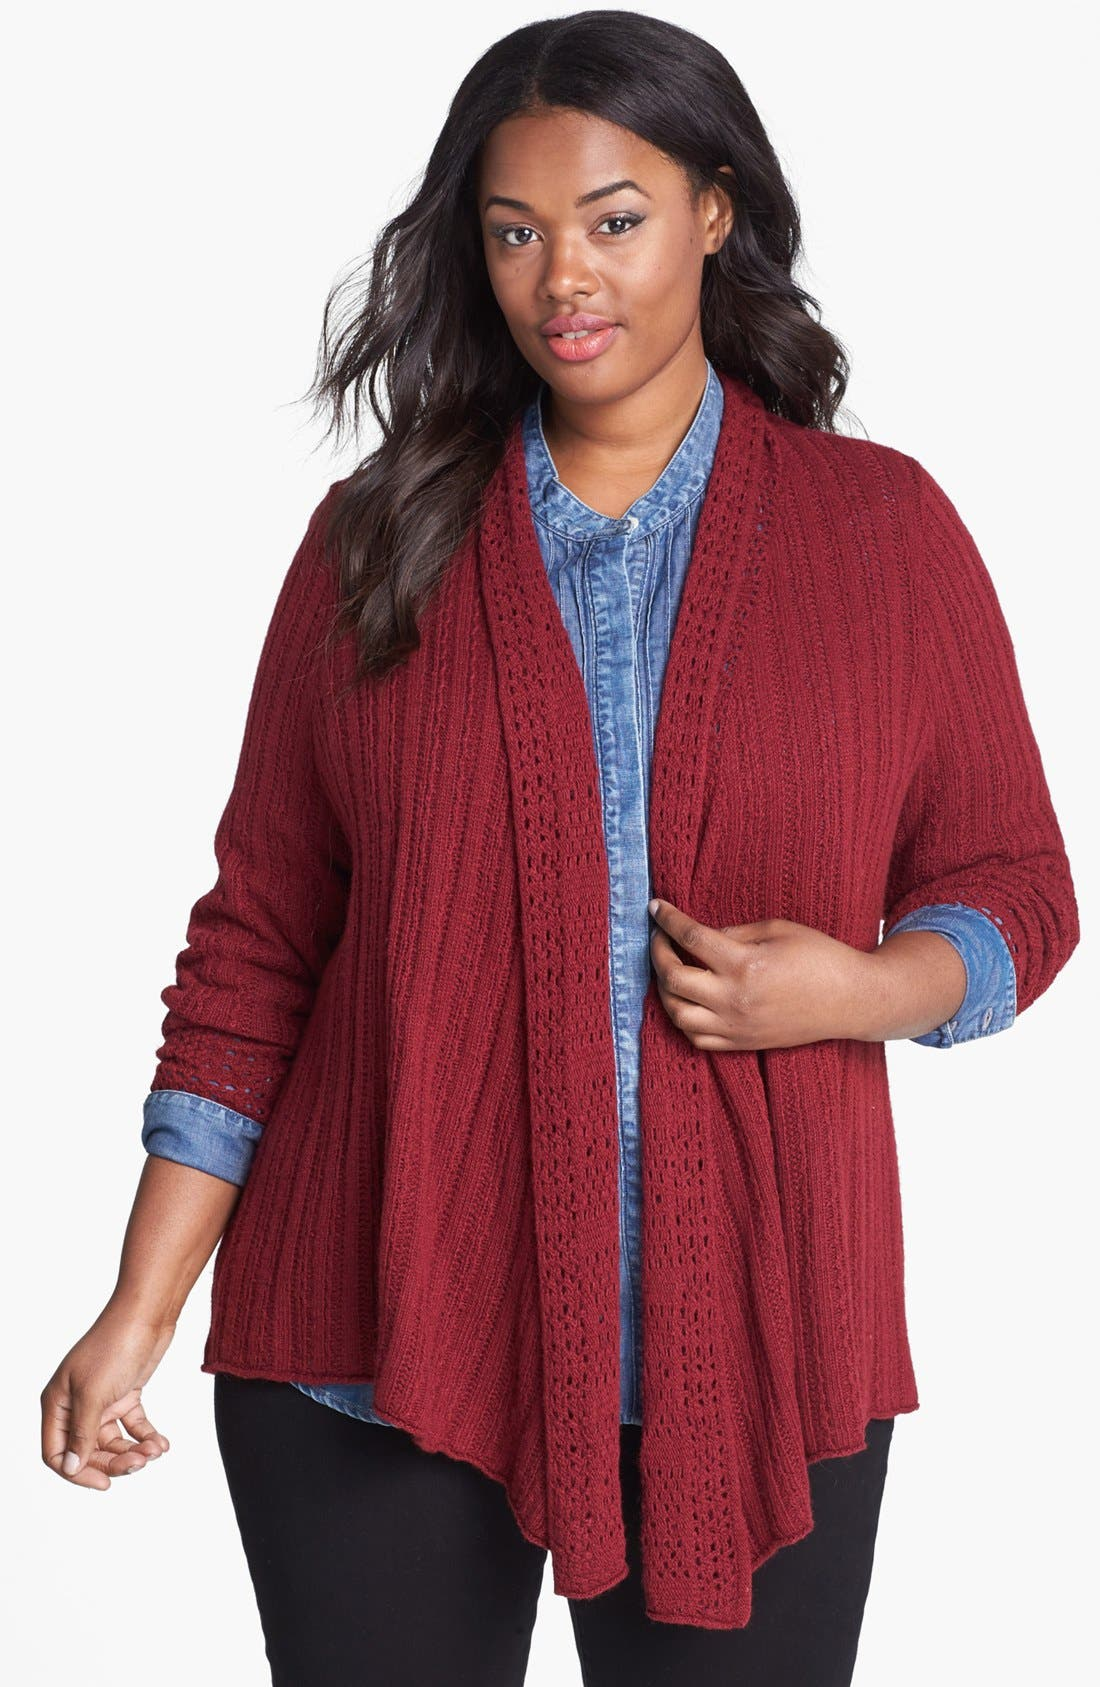 Alternate Image 1 Selected - Lucky Brand 'Venice' Drape Front Sweater (Plus Size)